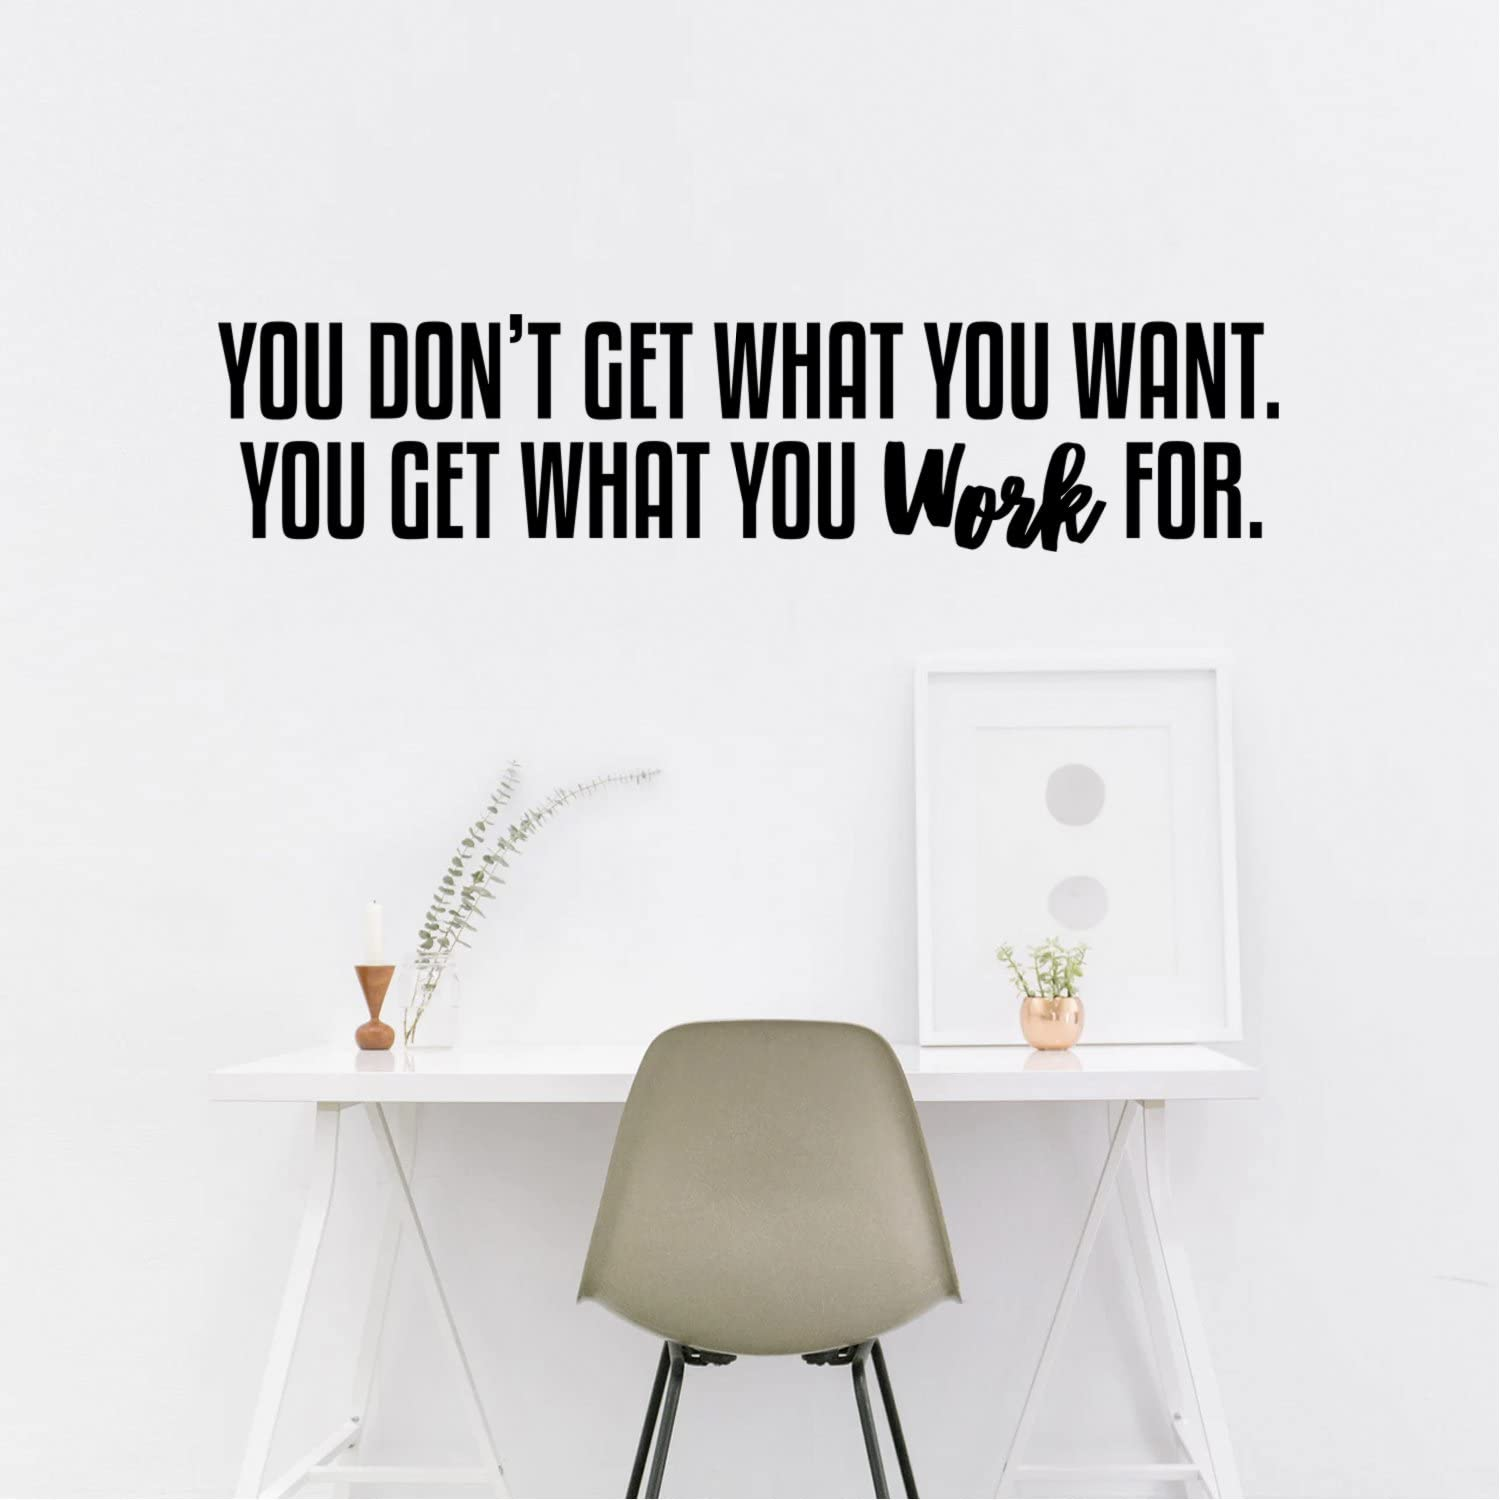 Wall Art Vinyl Decal - You Don't Get What You Want You Get What You Work for - 9